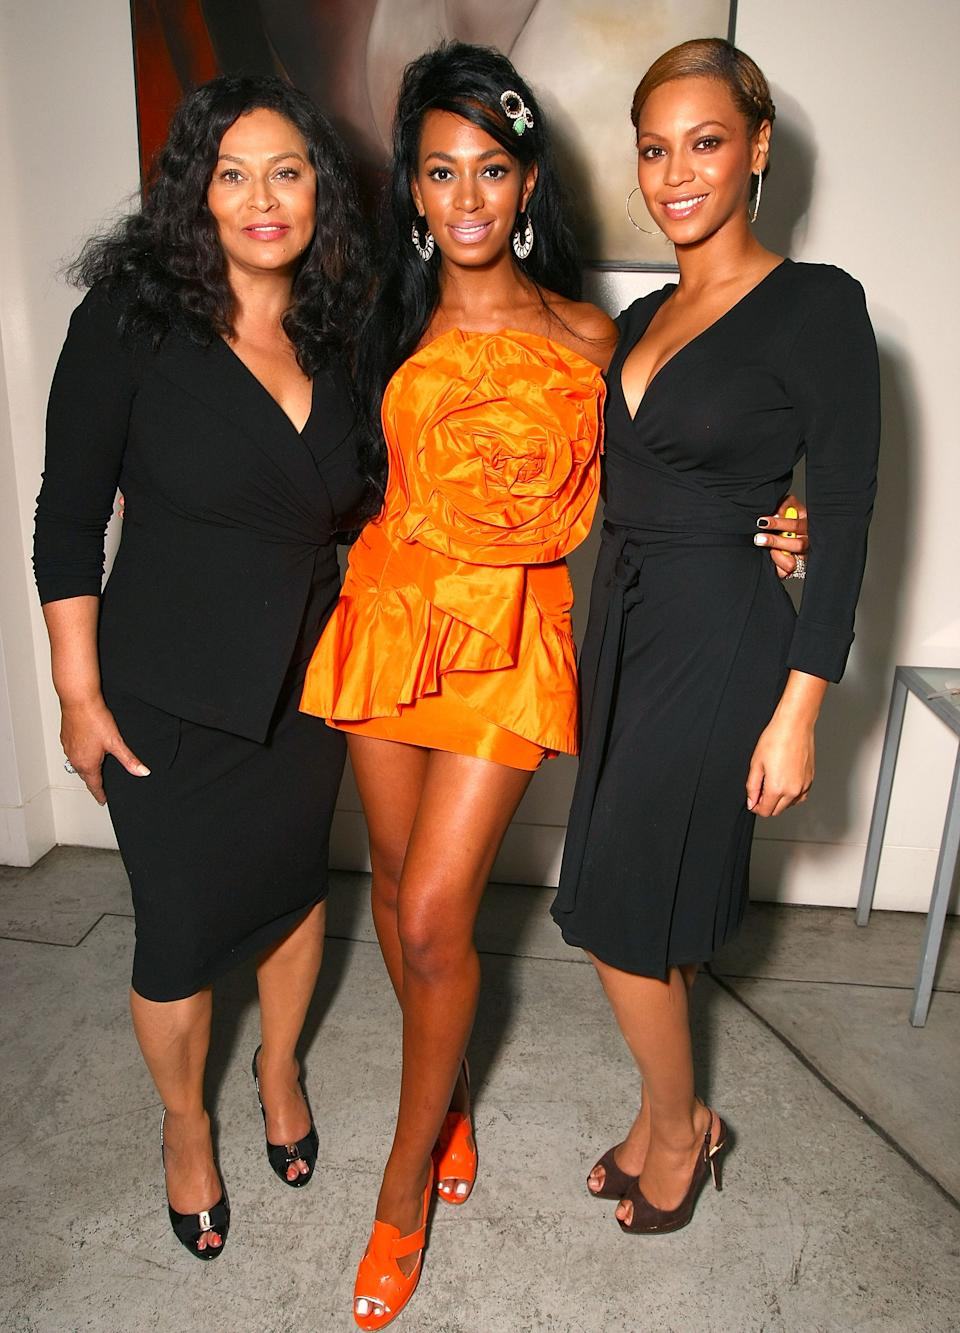 LOS ANGELES, CA - JUNE 23:  (EXCLUSIVE COVERAGE) (L-R) Designer Tina Knowles, recording artist Solange Knowles and recording artist Beyonce Knowles attend recording artist Solange Knowles' birthday party held at a private residence on June 23, 2008 in Los Angeles, California.  (Photo by Alberto E. Rodriguez/Getty Images for Geffen Records)